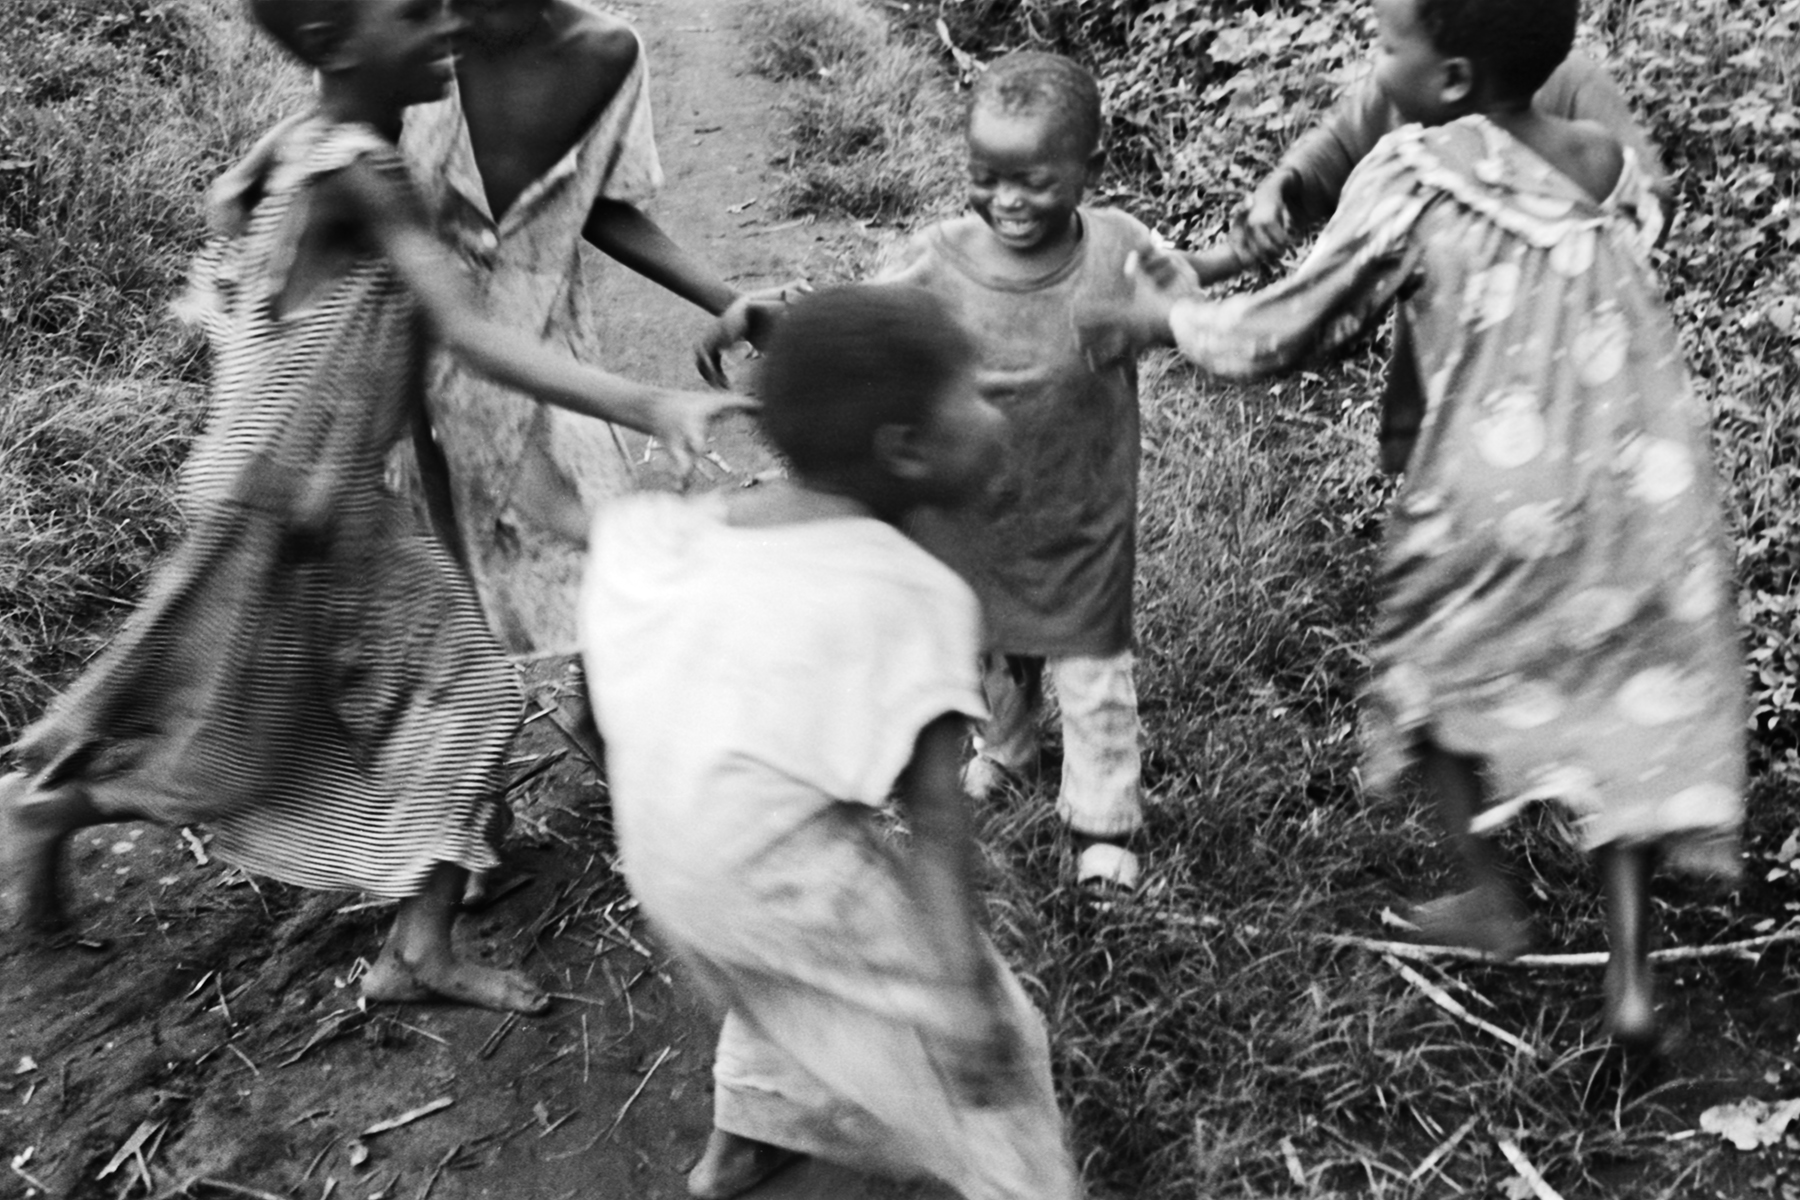 Explore what daily life is likein Wanteete, Uganda, as seenthrough the community member's own eyes. All photographs were shot on black & white film by WPC members and hand processed on location from February through May of 2014. Click on the link to see the entire gallery.    The Collection